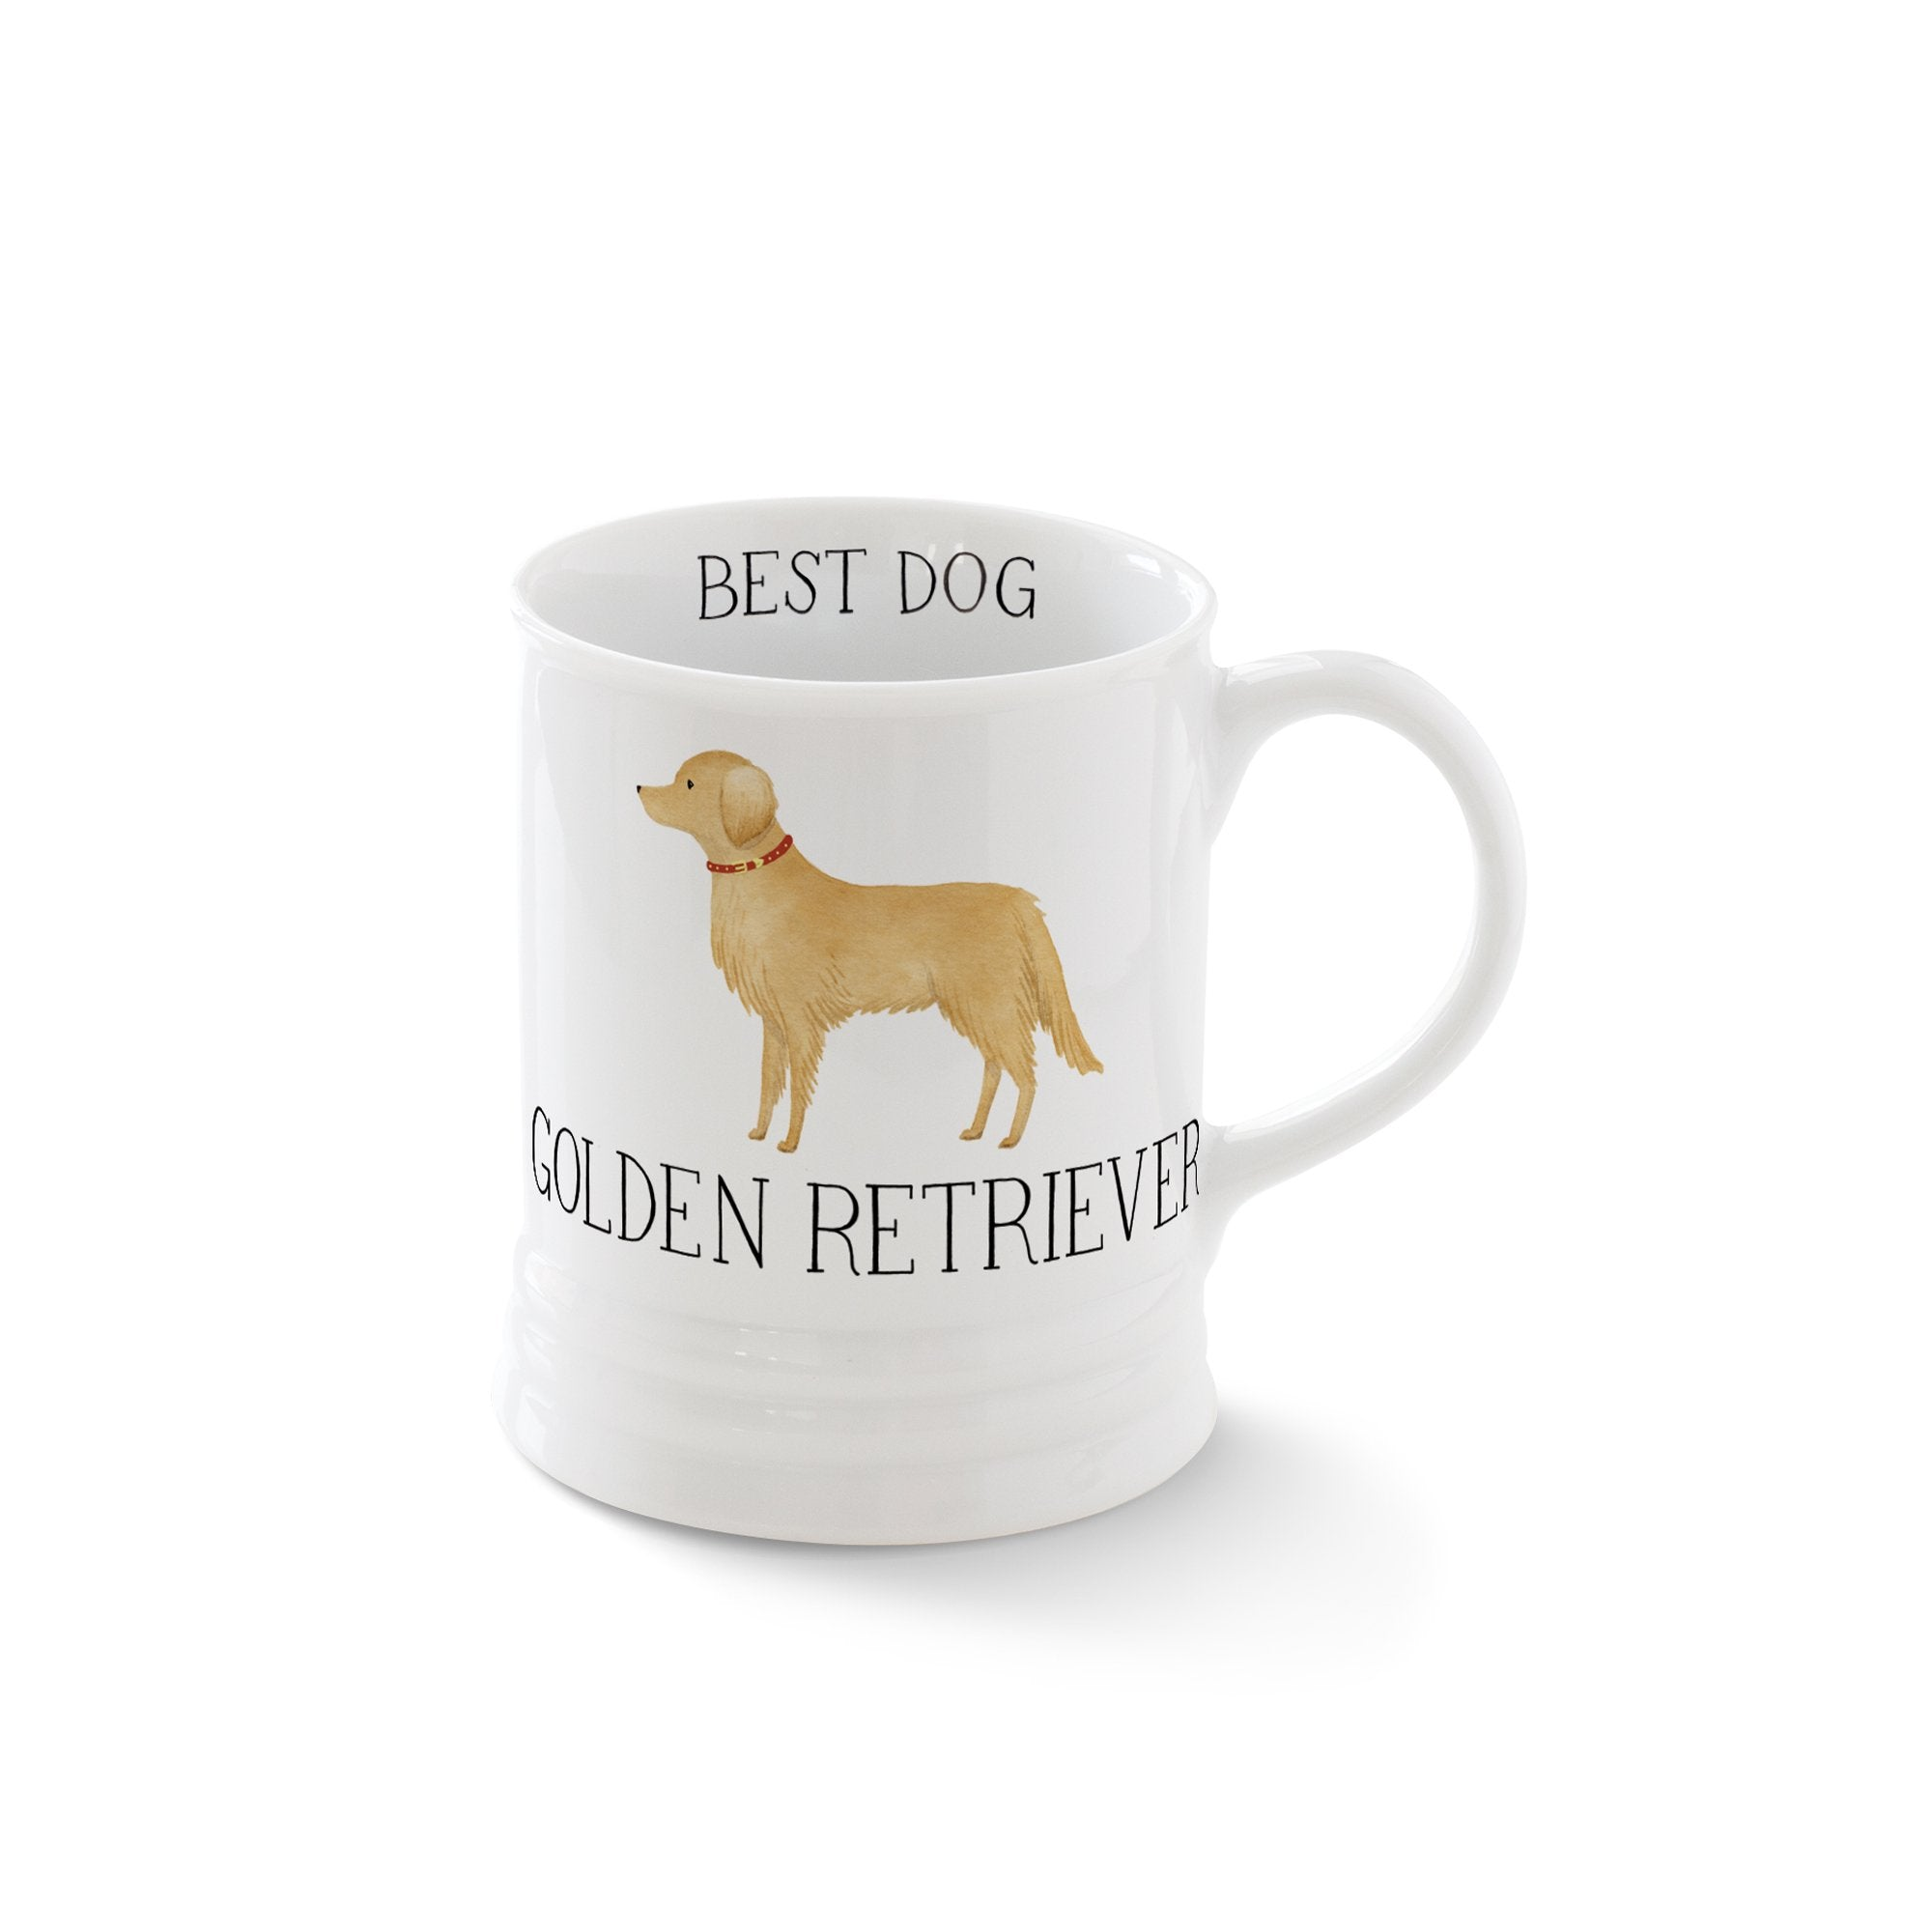 Golden Retriever Mug by Fringe Studio